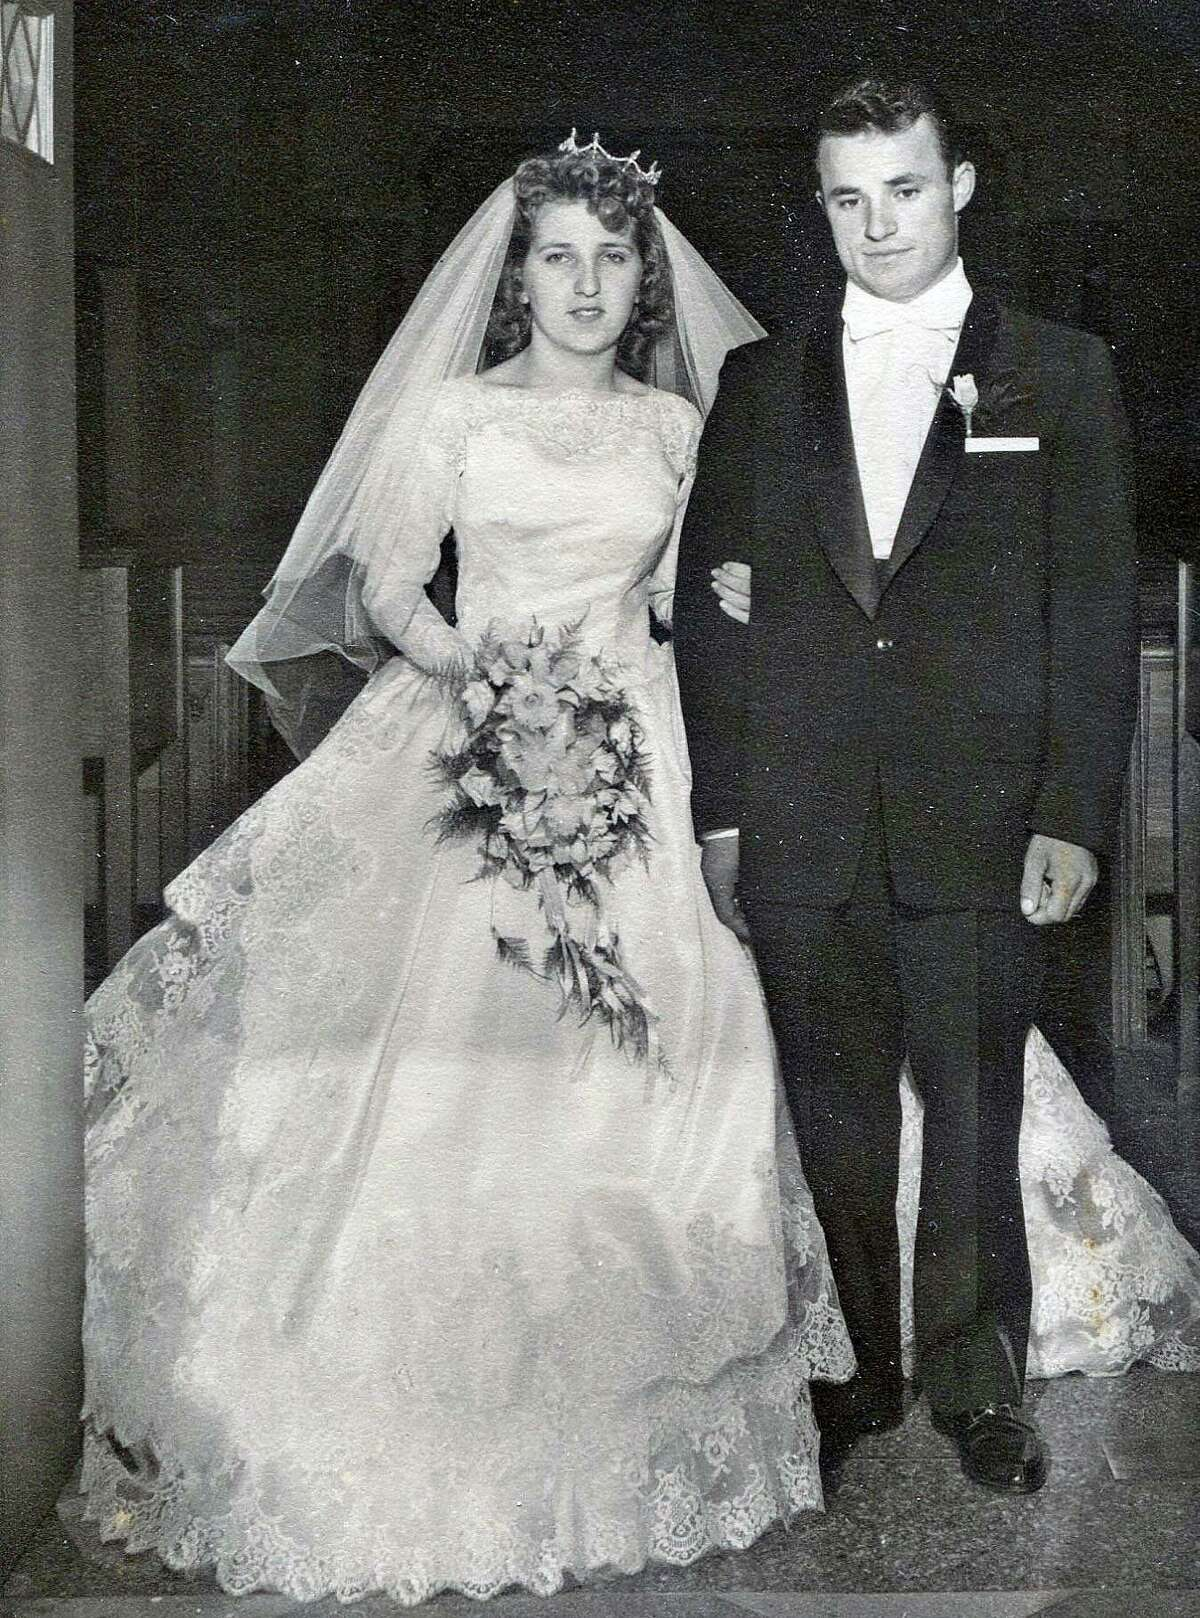 Americo and Maria (DiTunno) Paniccia will celebrate their 60th wedding anniversary on Nov. 19, 2020.